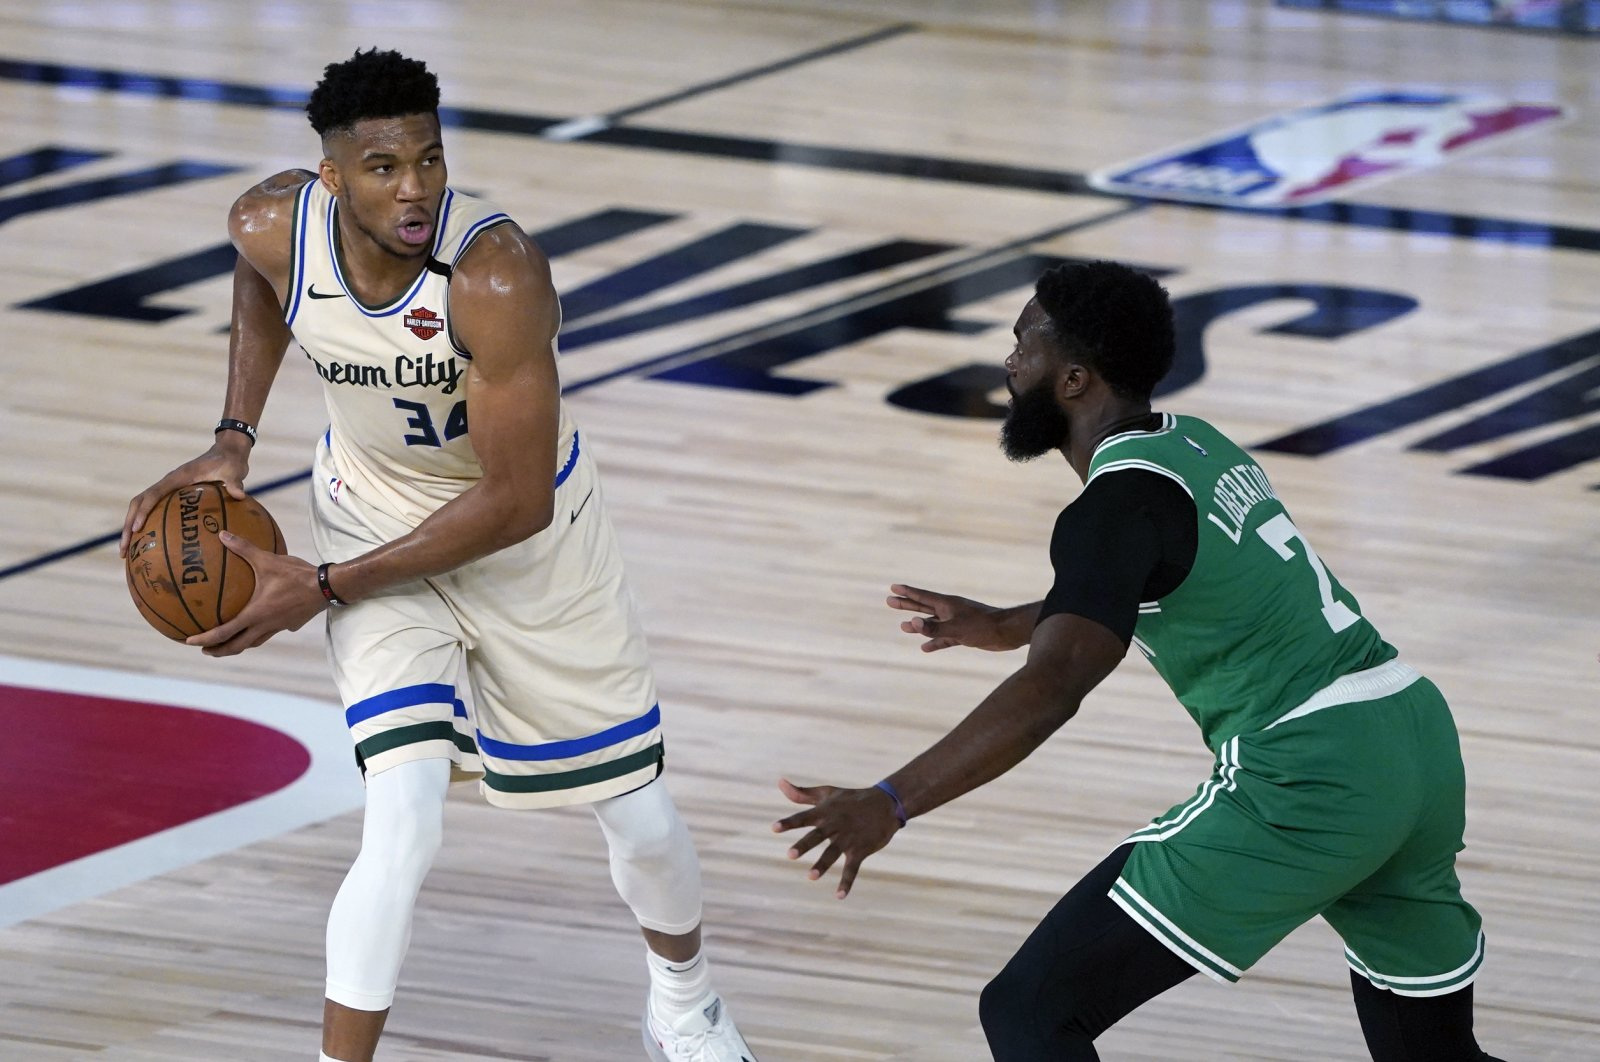 The Milwaukee Bucks' Giannis Antetokounmpo (L) looks to pass around the Boston Celtics' Jaylen Brown (R) during the first half of an NBA basketball game in Lake Buena Vista, Florida, July 31, 2020. (Ashley Landis/Pool Photo via USA Today Sports/Reuters)